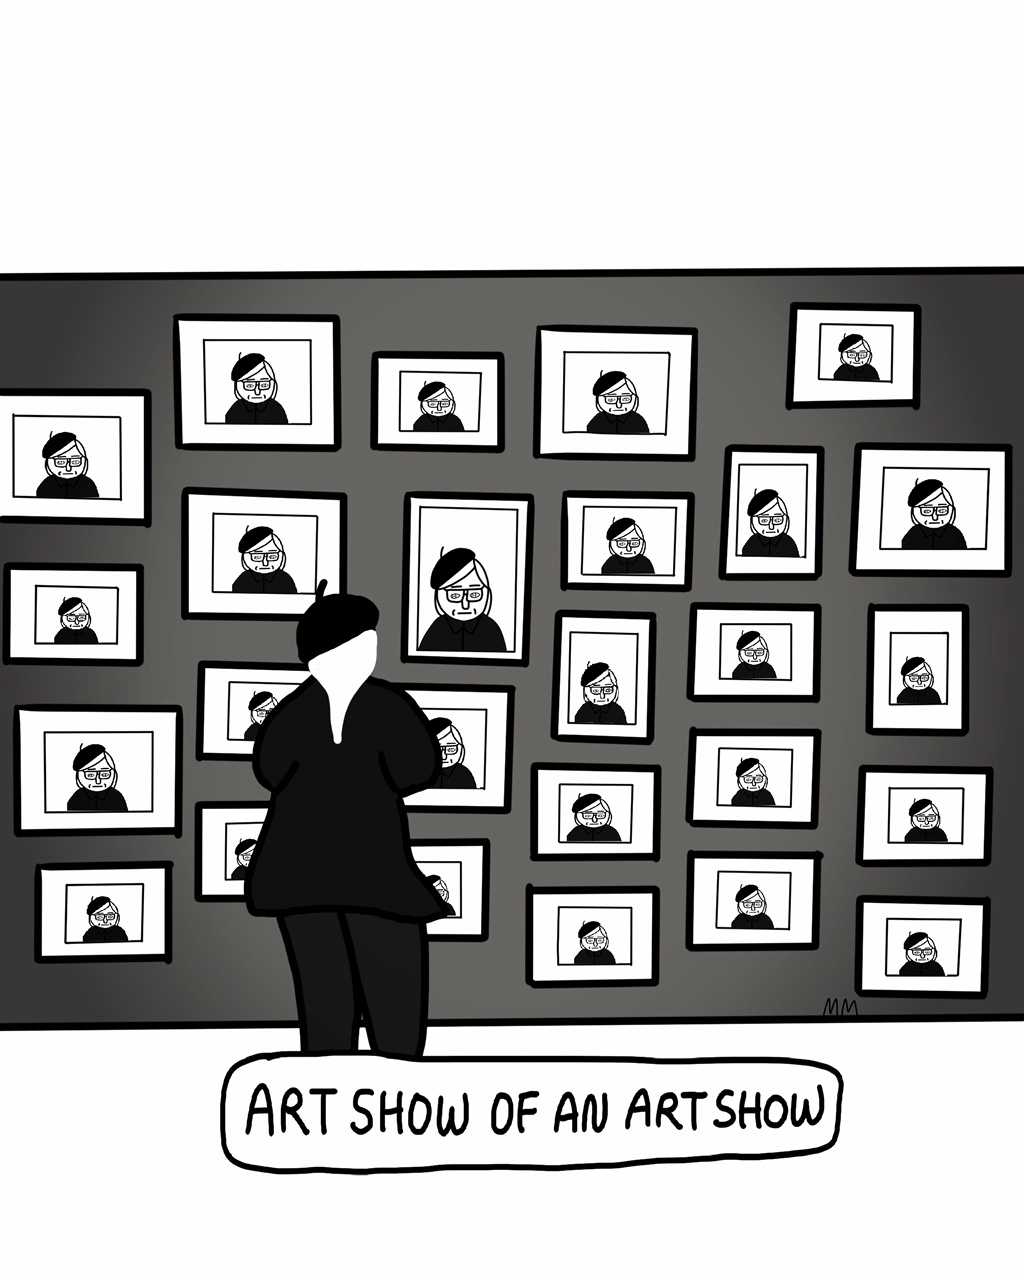 Art Show of An Art Show